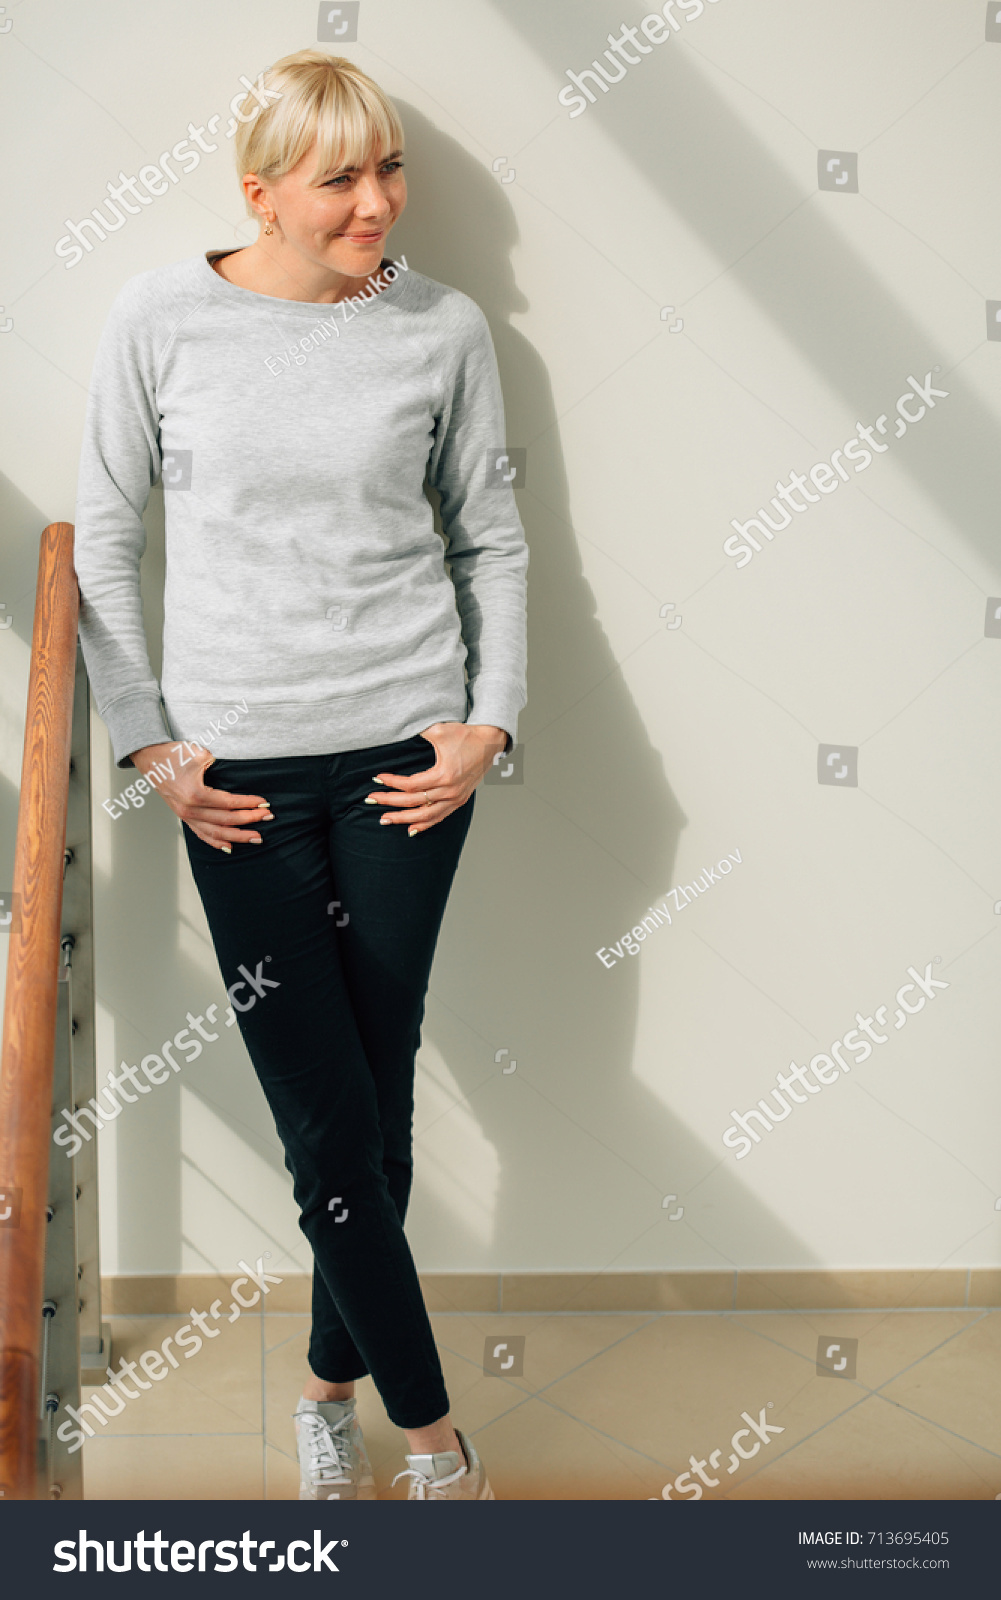 644d306049 Young stylish blonde woman in white sweater black pants and sneakers  standing near window. Cute